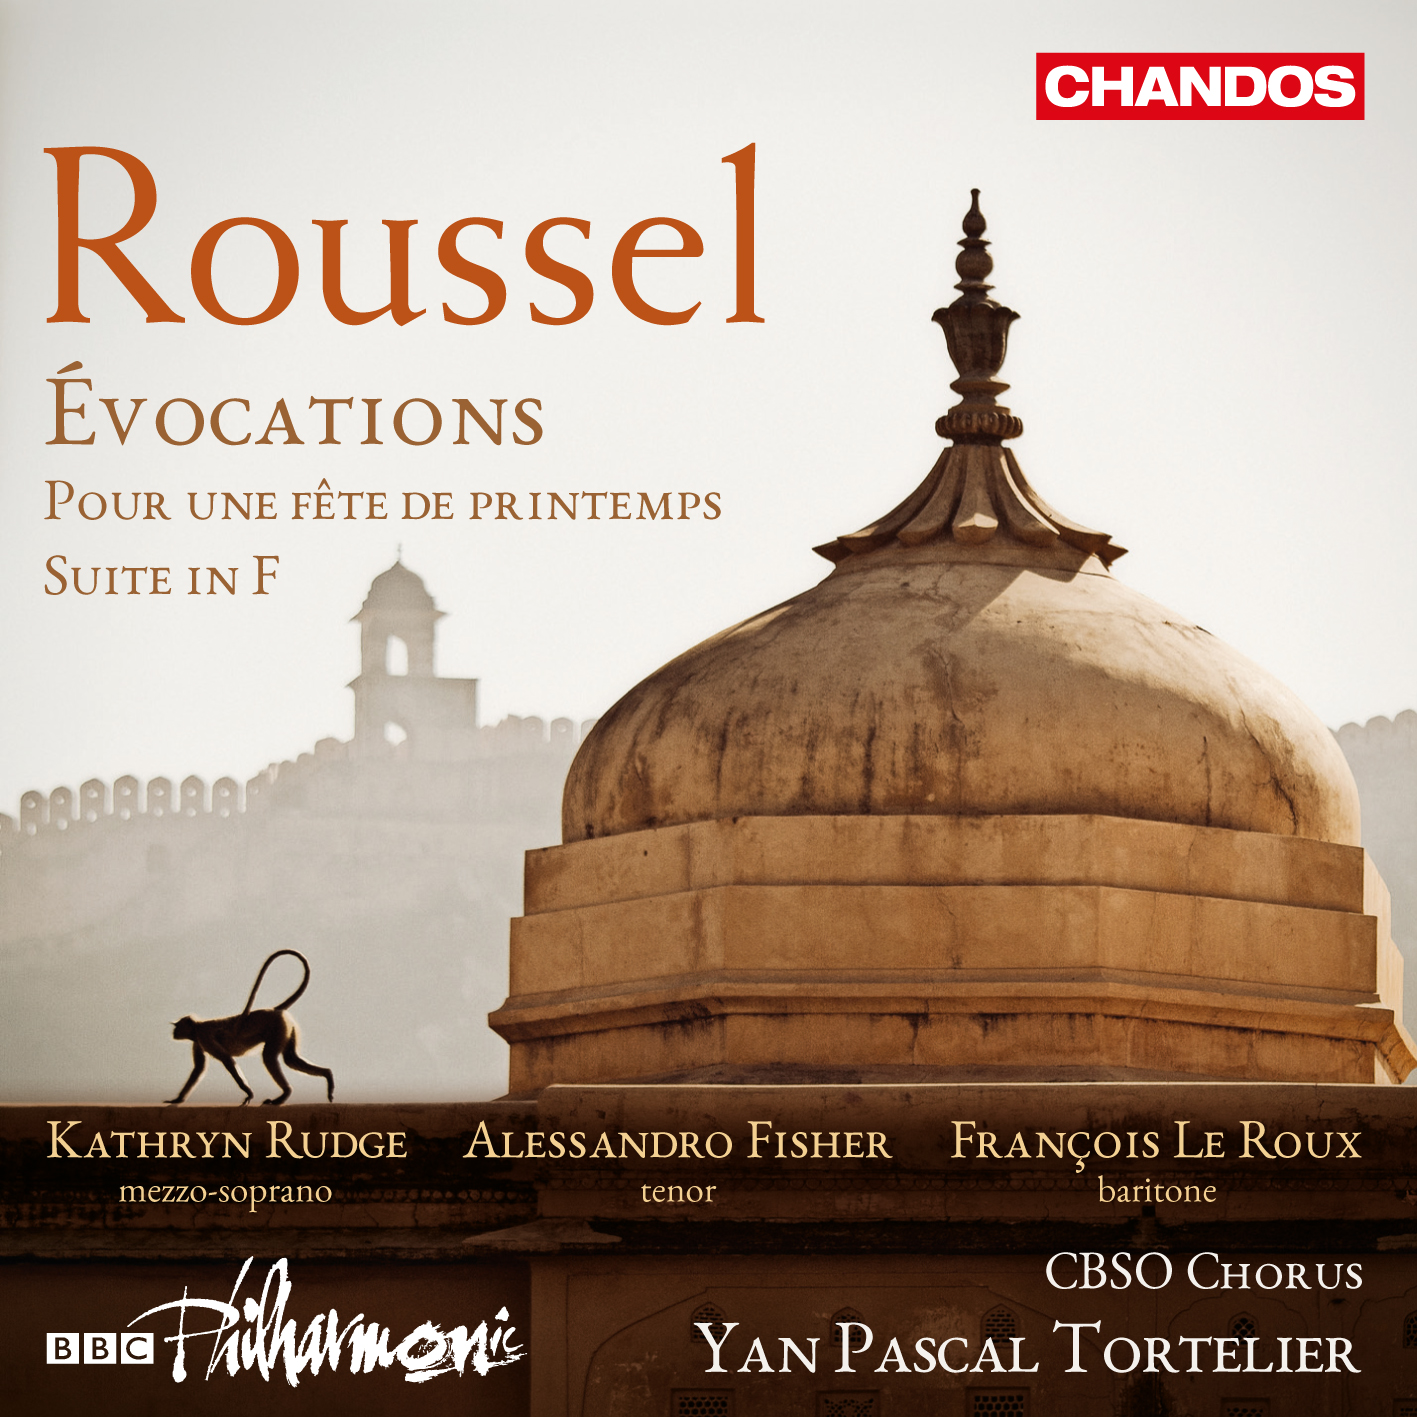 CHANDOS RECORD RELEASE – ROUSSEL'S EVOCATIONS